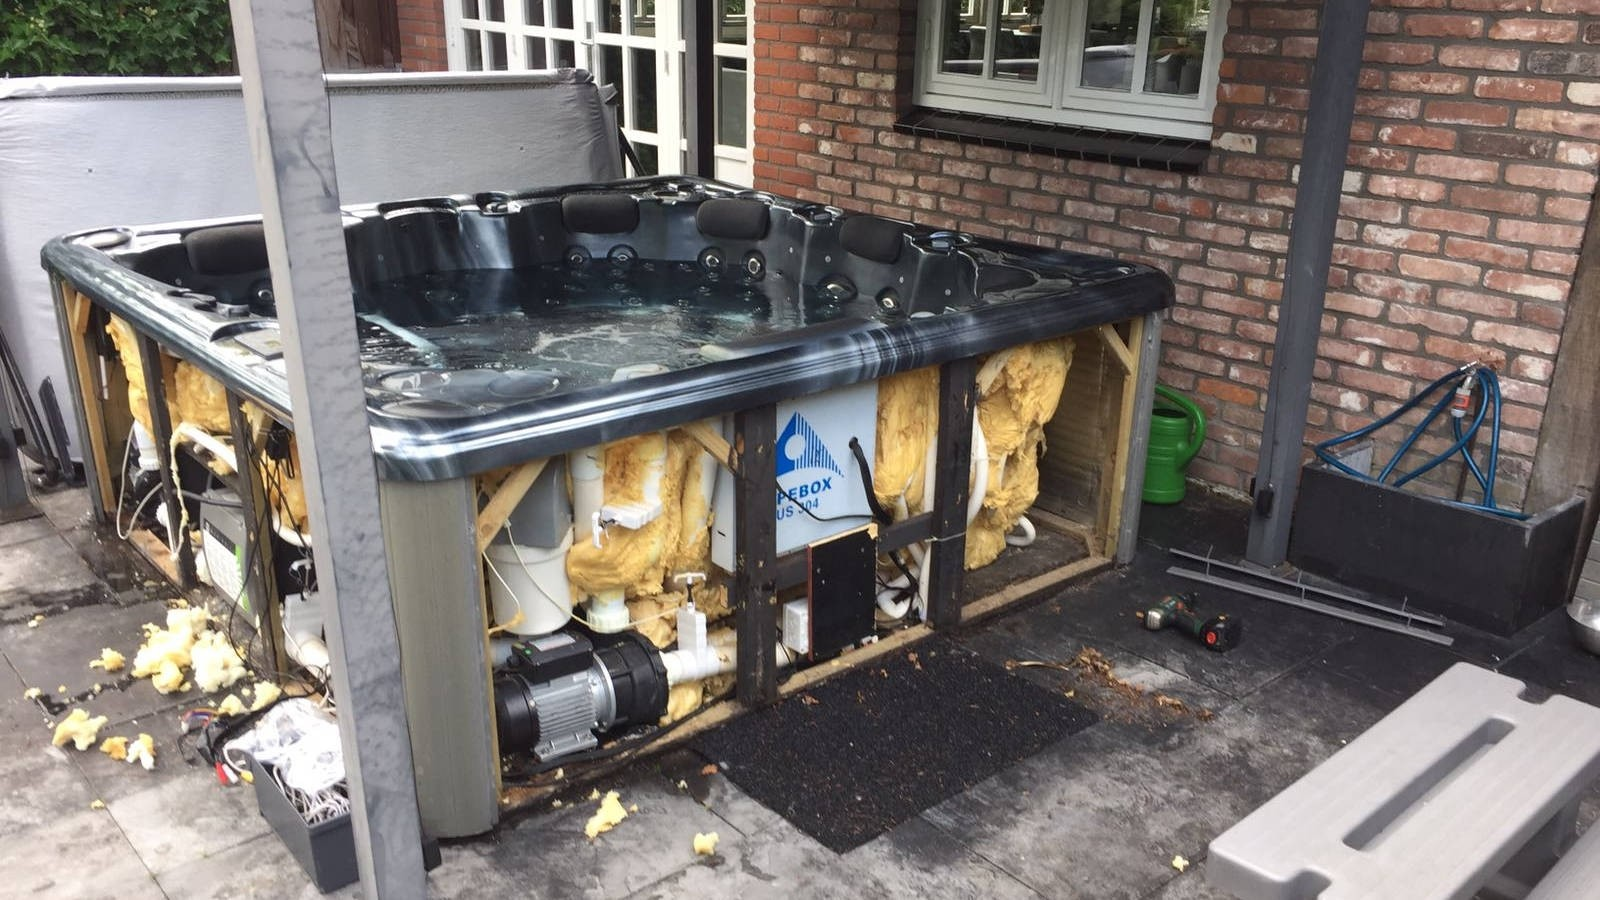 Reparatie defecte circulatiepomp en ledjes in Sunspa in Boskoop